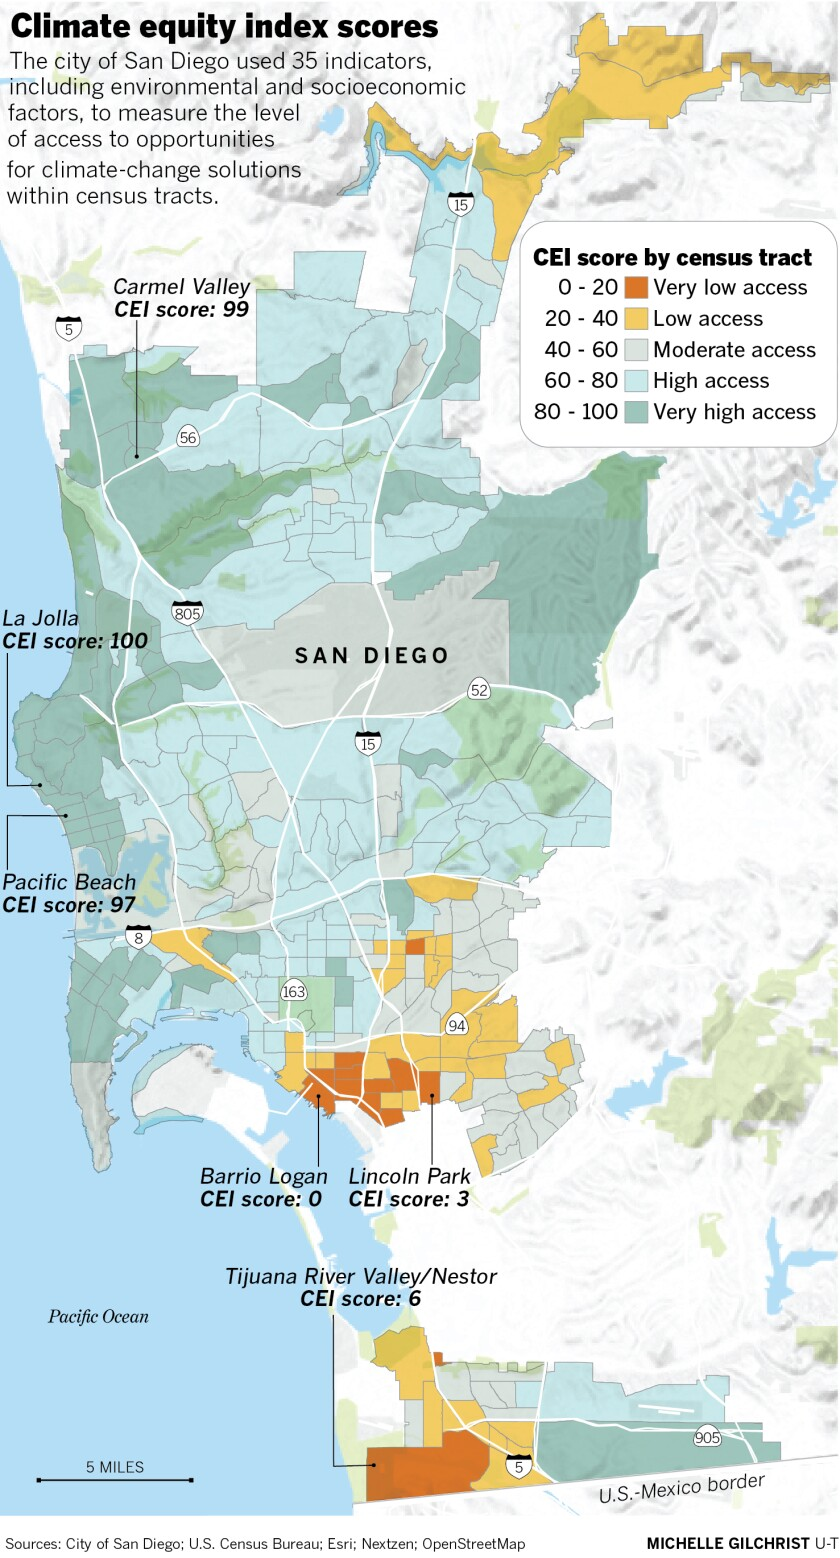 492049-sd-me-g-san-diego-climate-equity-index-map-01.jpg